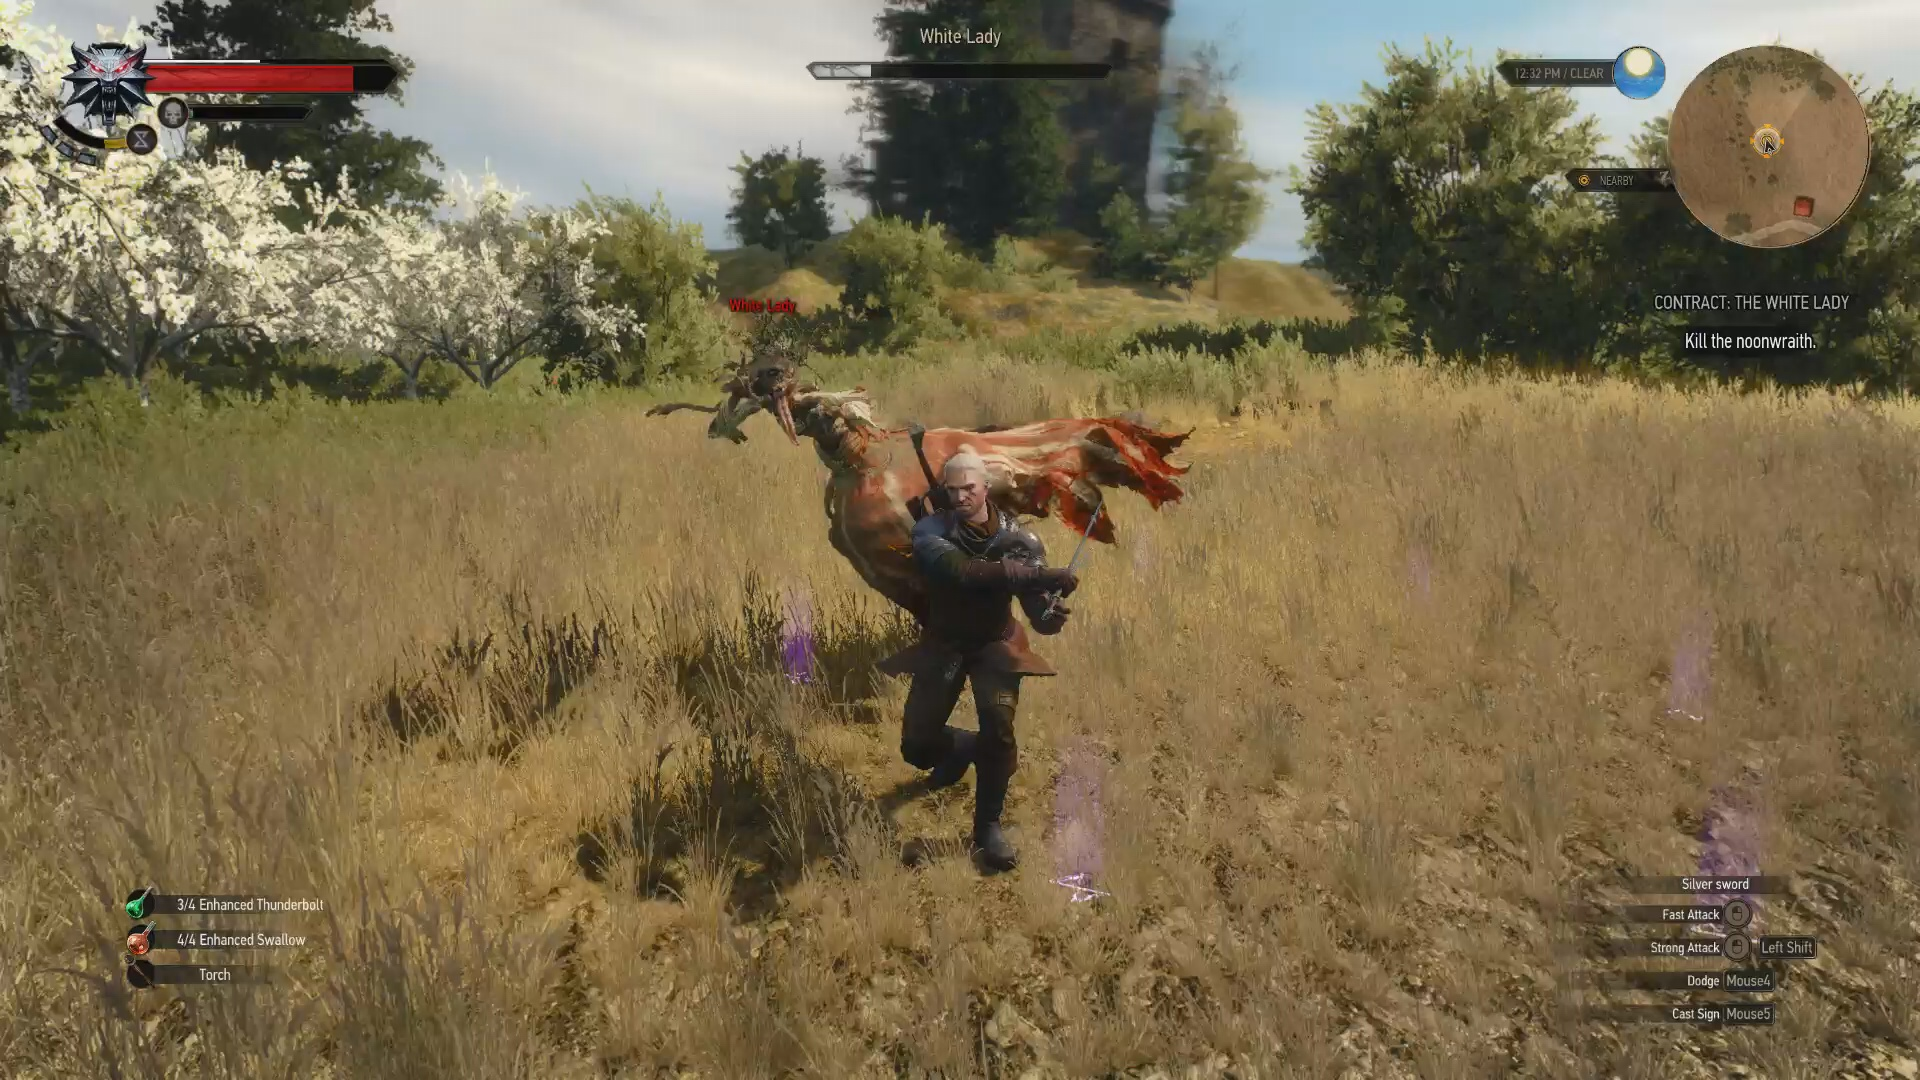 The Witcher 3: Novigrad Witcher Contracts Guide - Apiarian